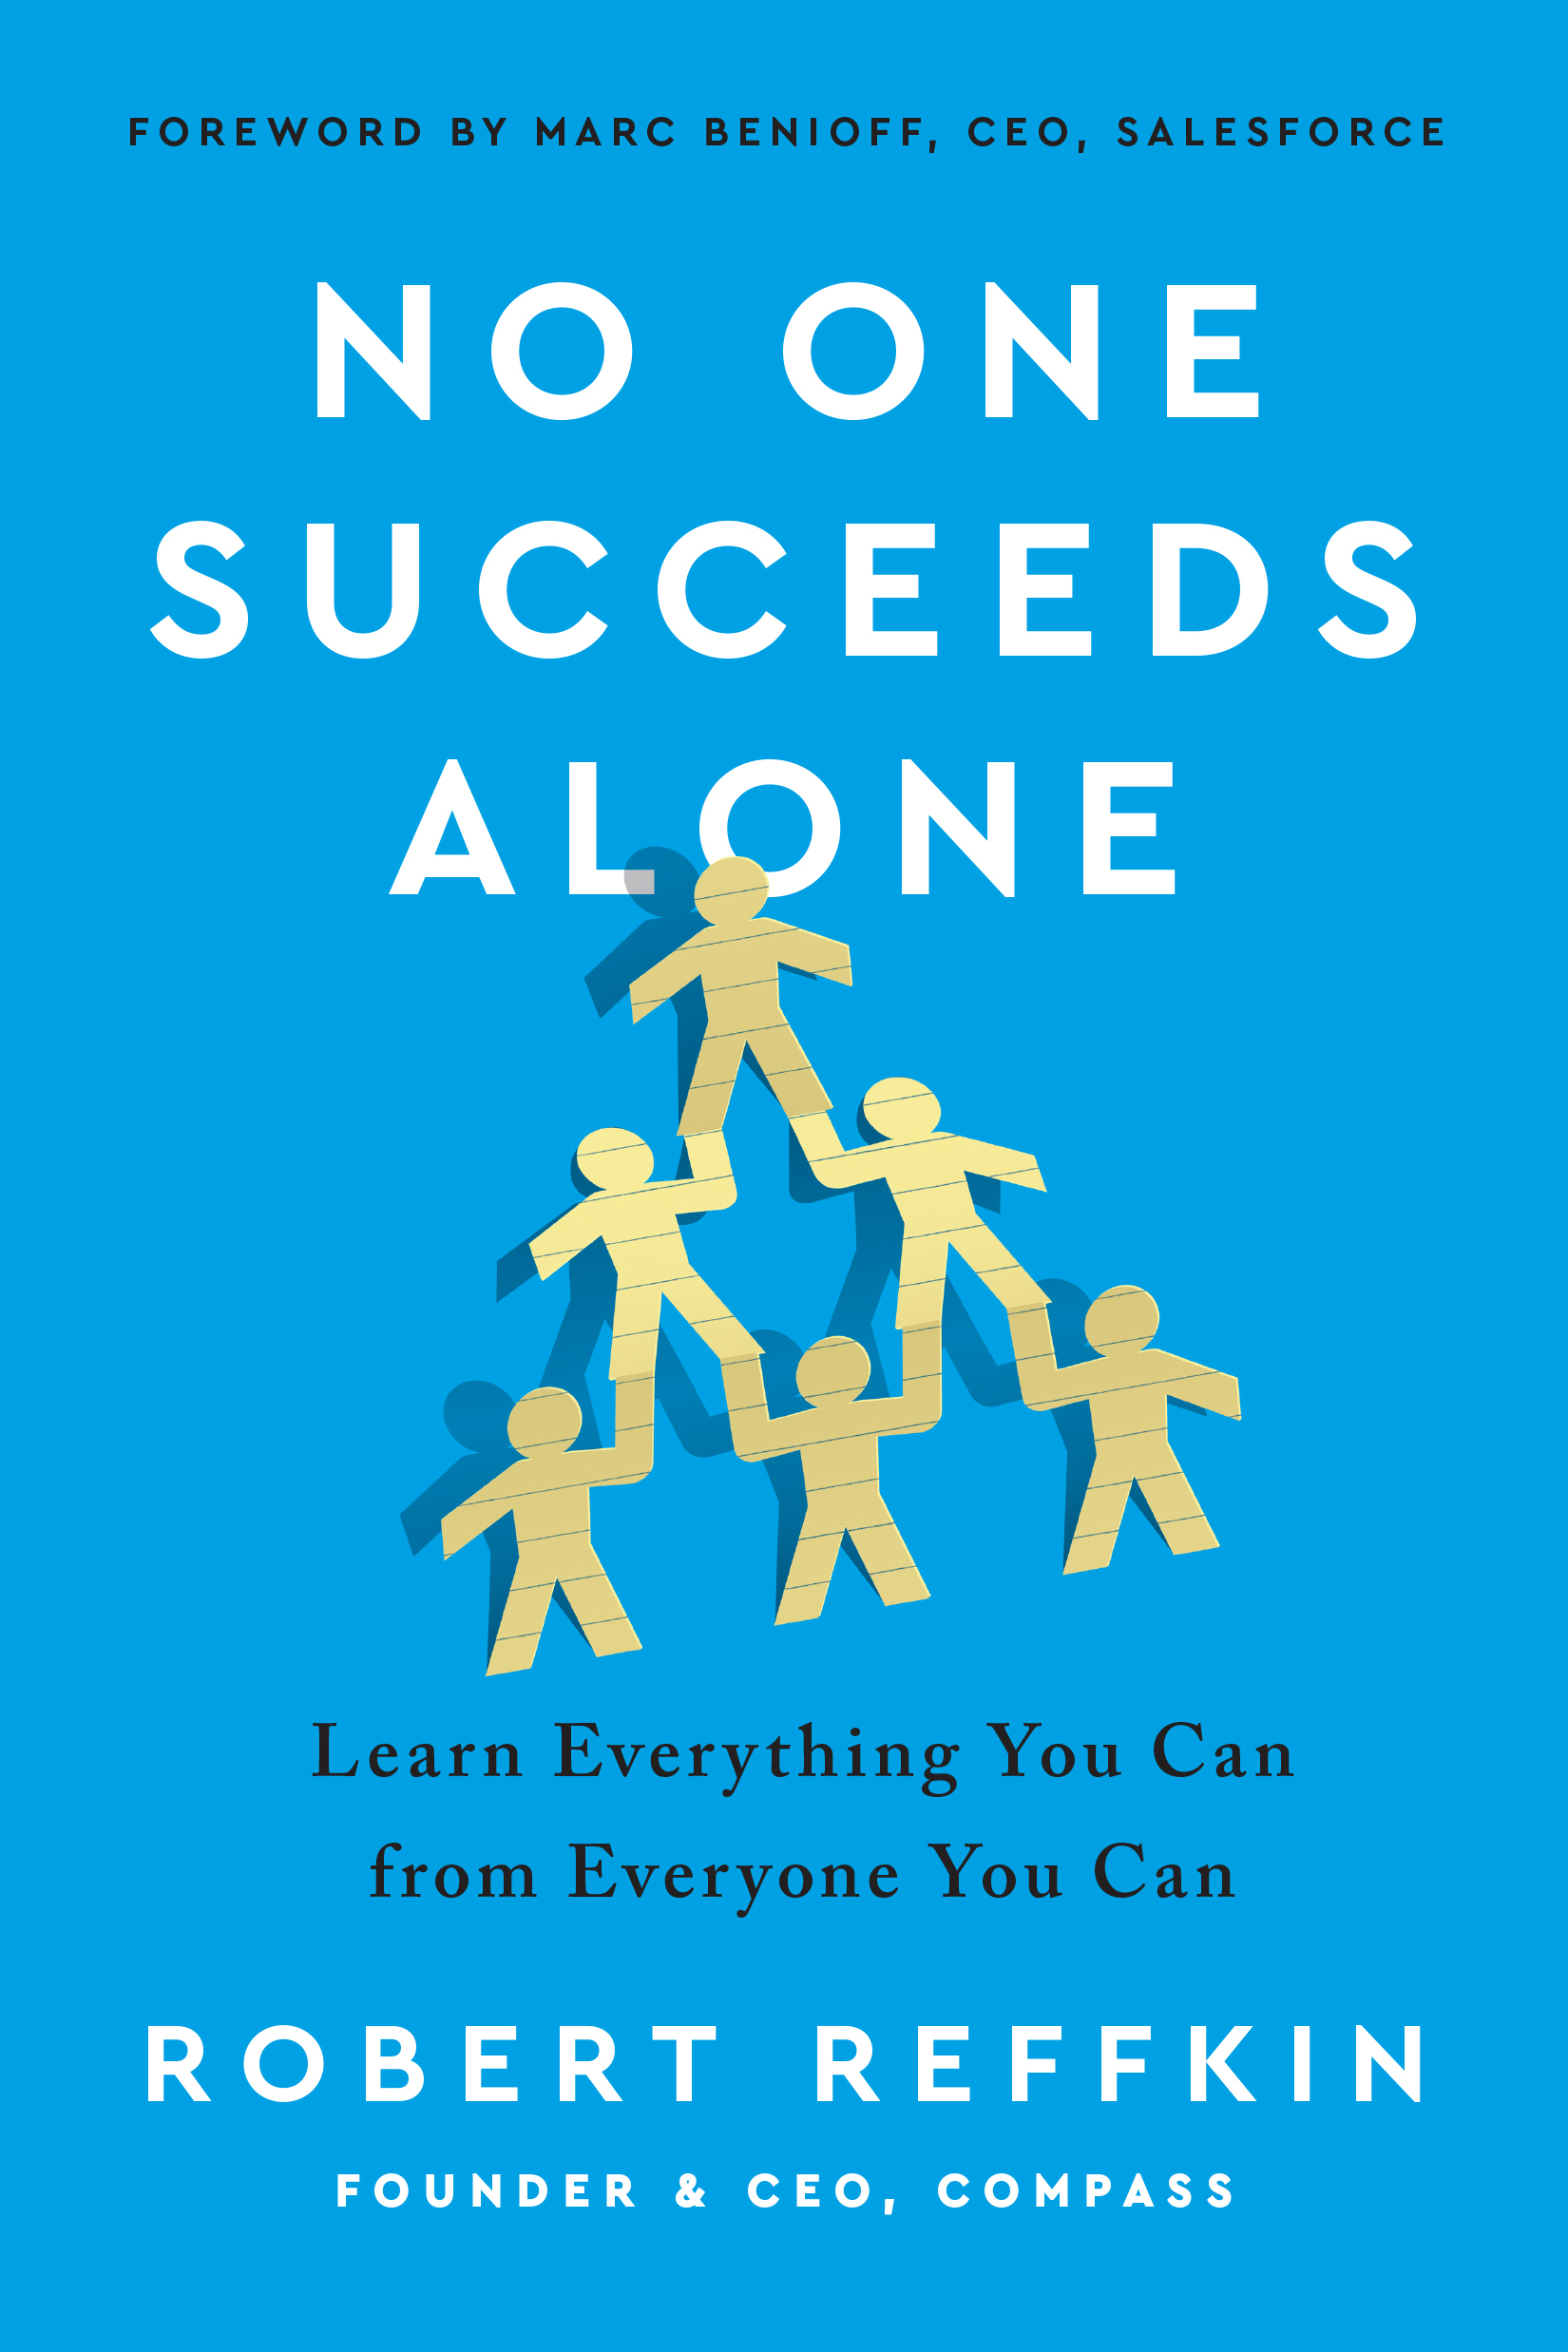 No One Succeeds Alone: Lessons from My Mom, My Mentors, and My Search for Belonging in Business and in Life